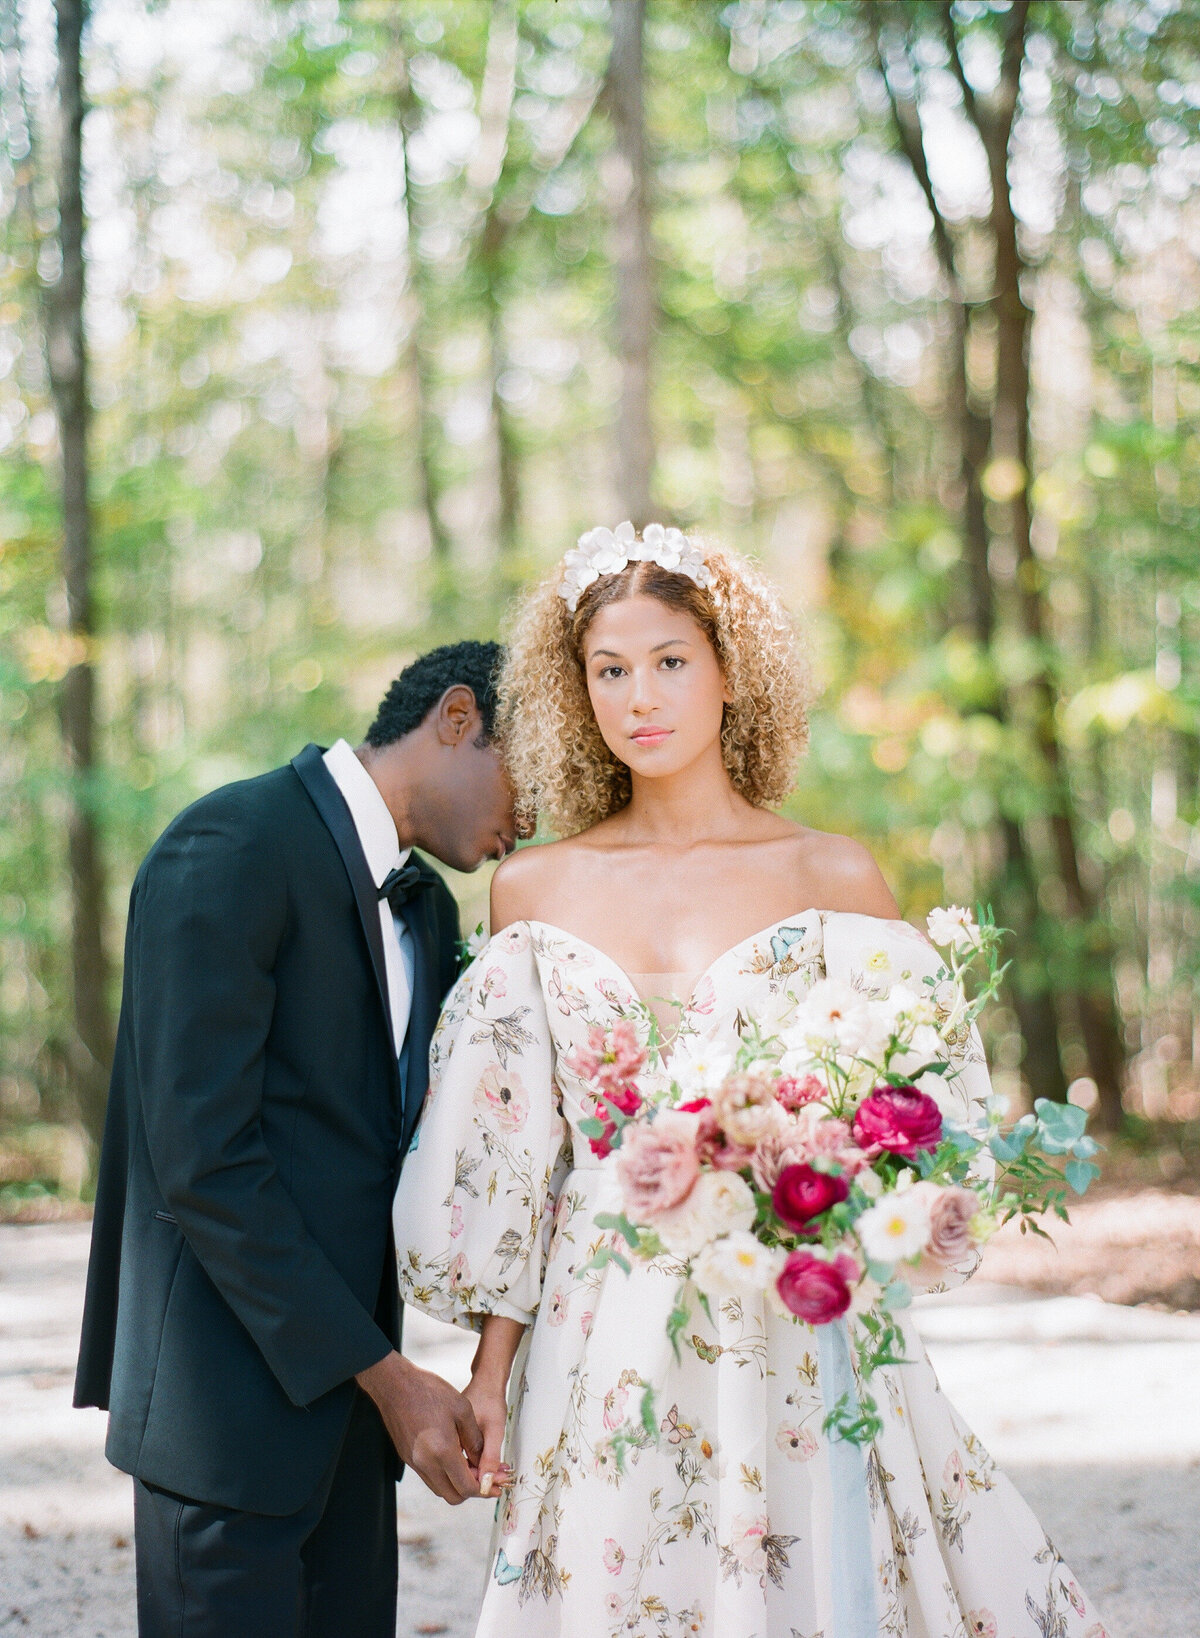 Carolina Grove Monet Inspired Wedding Photography, North-Carolina 11